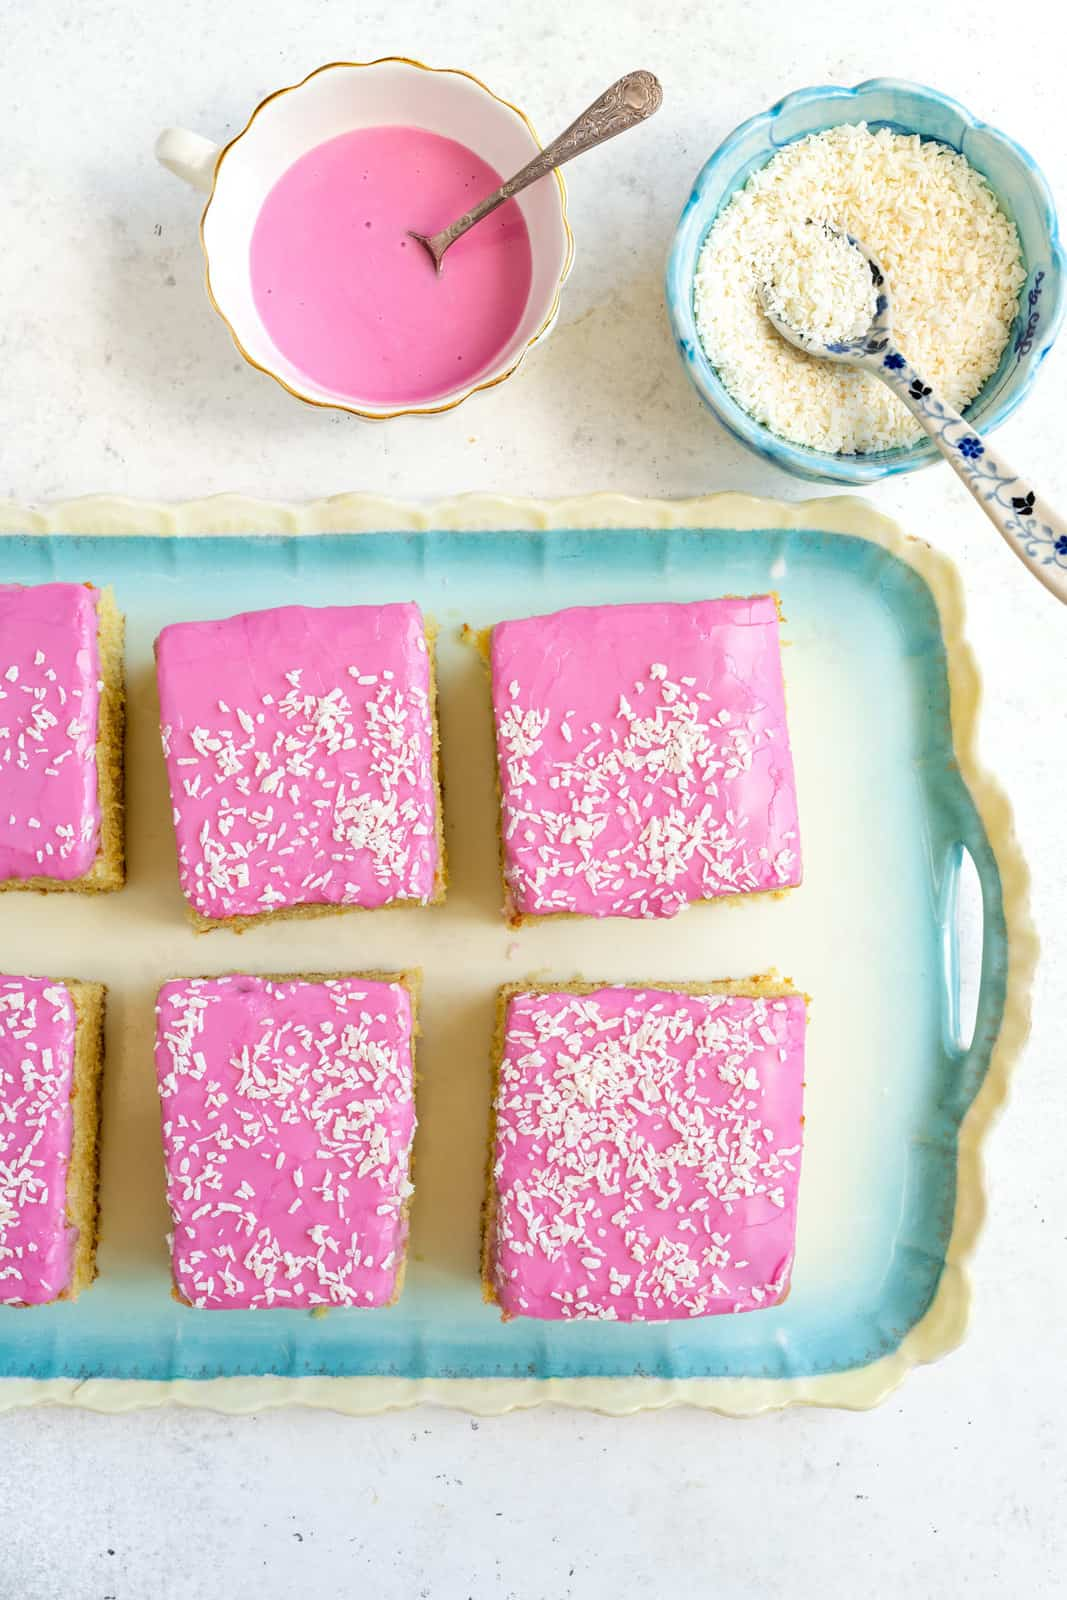 Tottenham cake sliced in squares on a tray with pink icing and coconut on the side